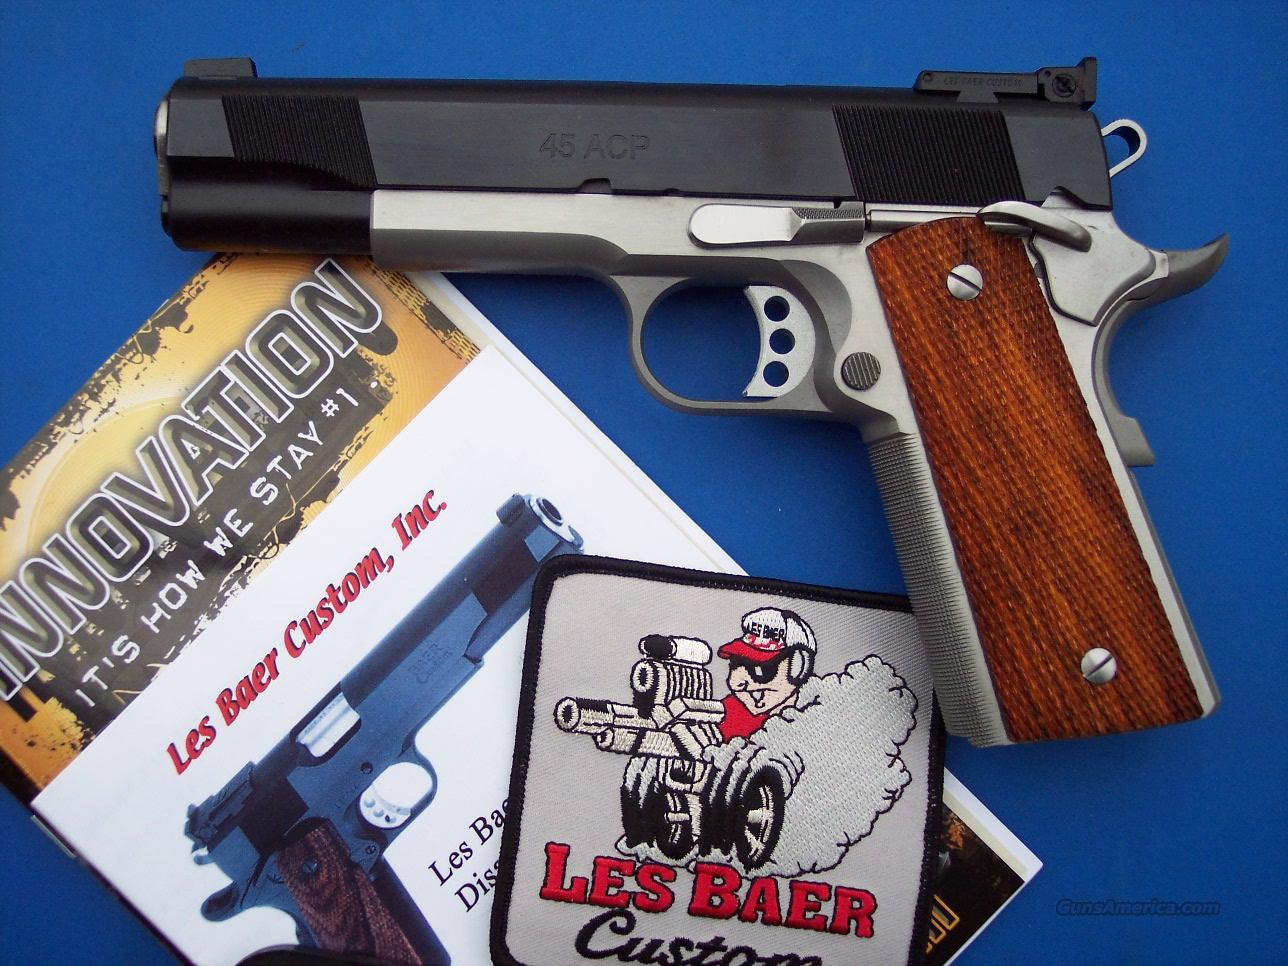 LES BAER Concept III Tactical Pkg 1911 *NEW*  Guns > Pistols > Custom Pistols > 1911 Family